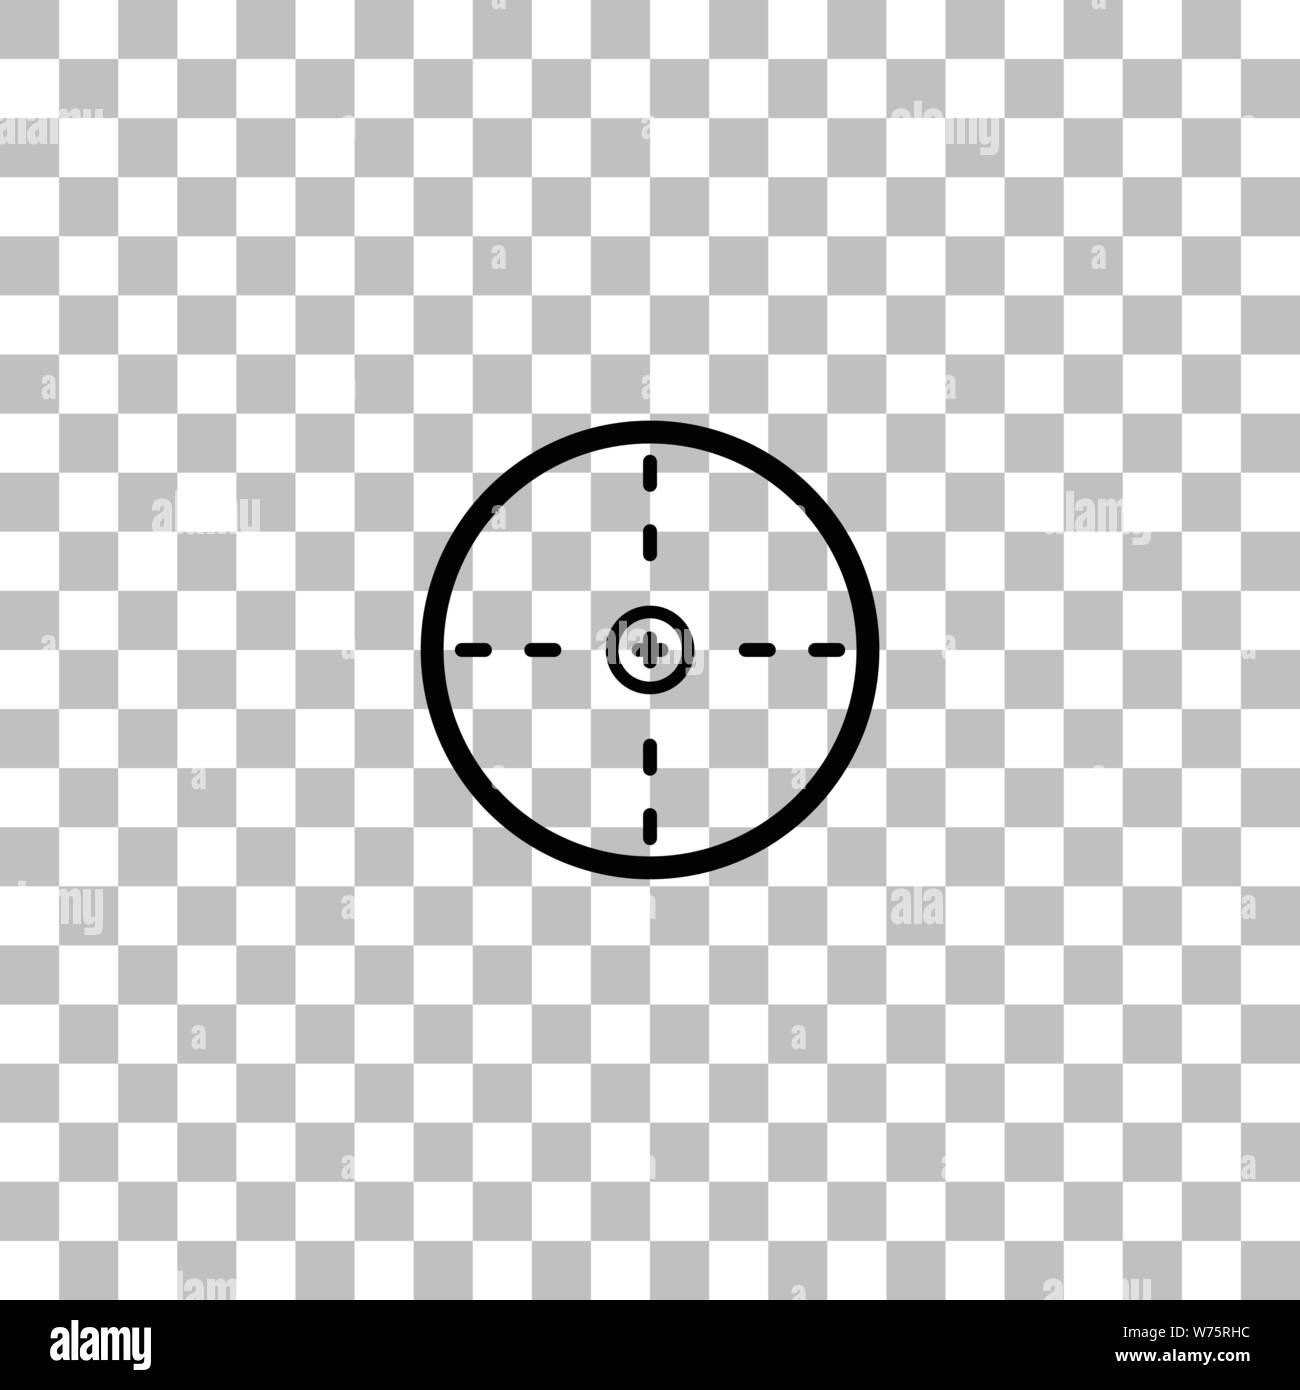 aim black flat icon on a transparent background pictogram for your project stock vector image art alamy https www alamy com aim black flat icon on a transparent background pictogram for your project image262586392 html